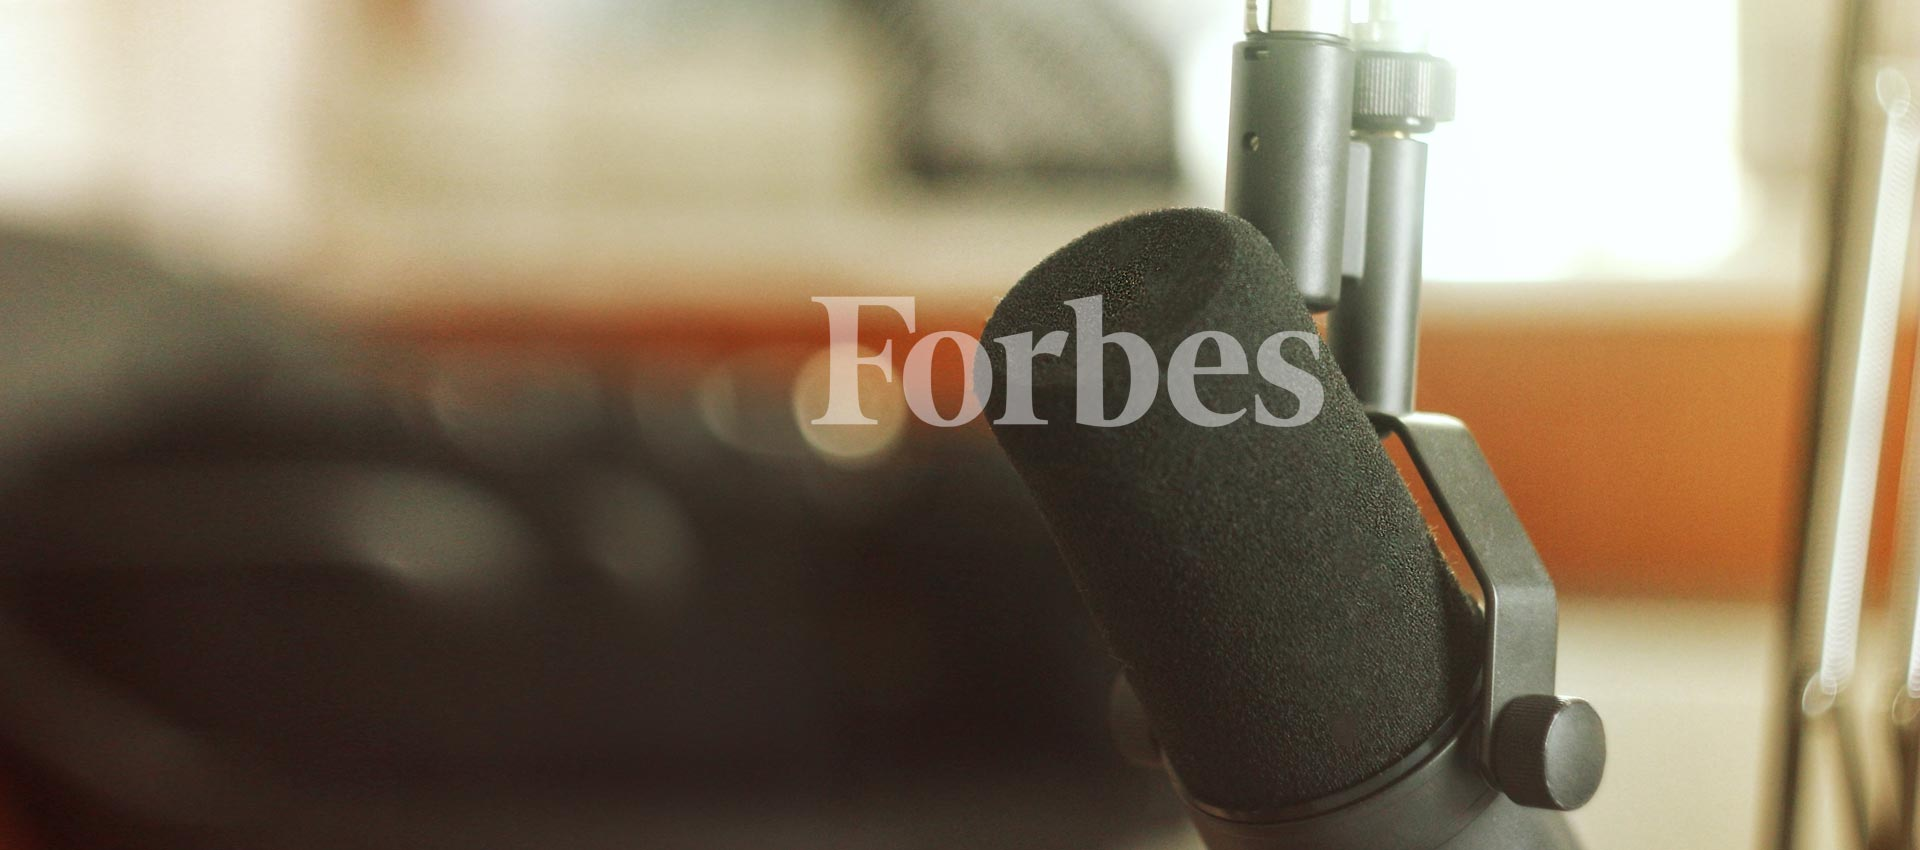 C3 IoT - Forbes Interview Microphone